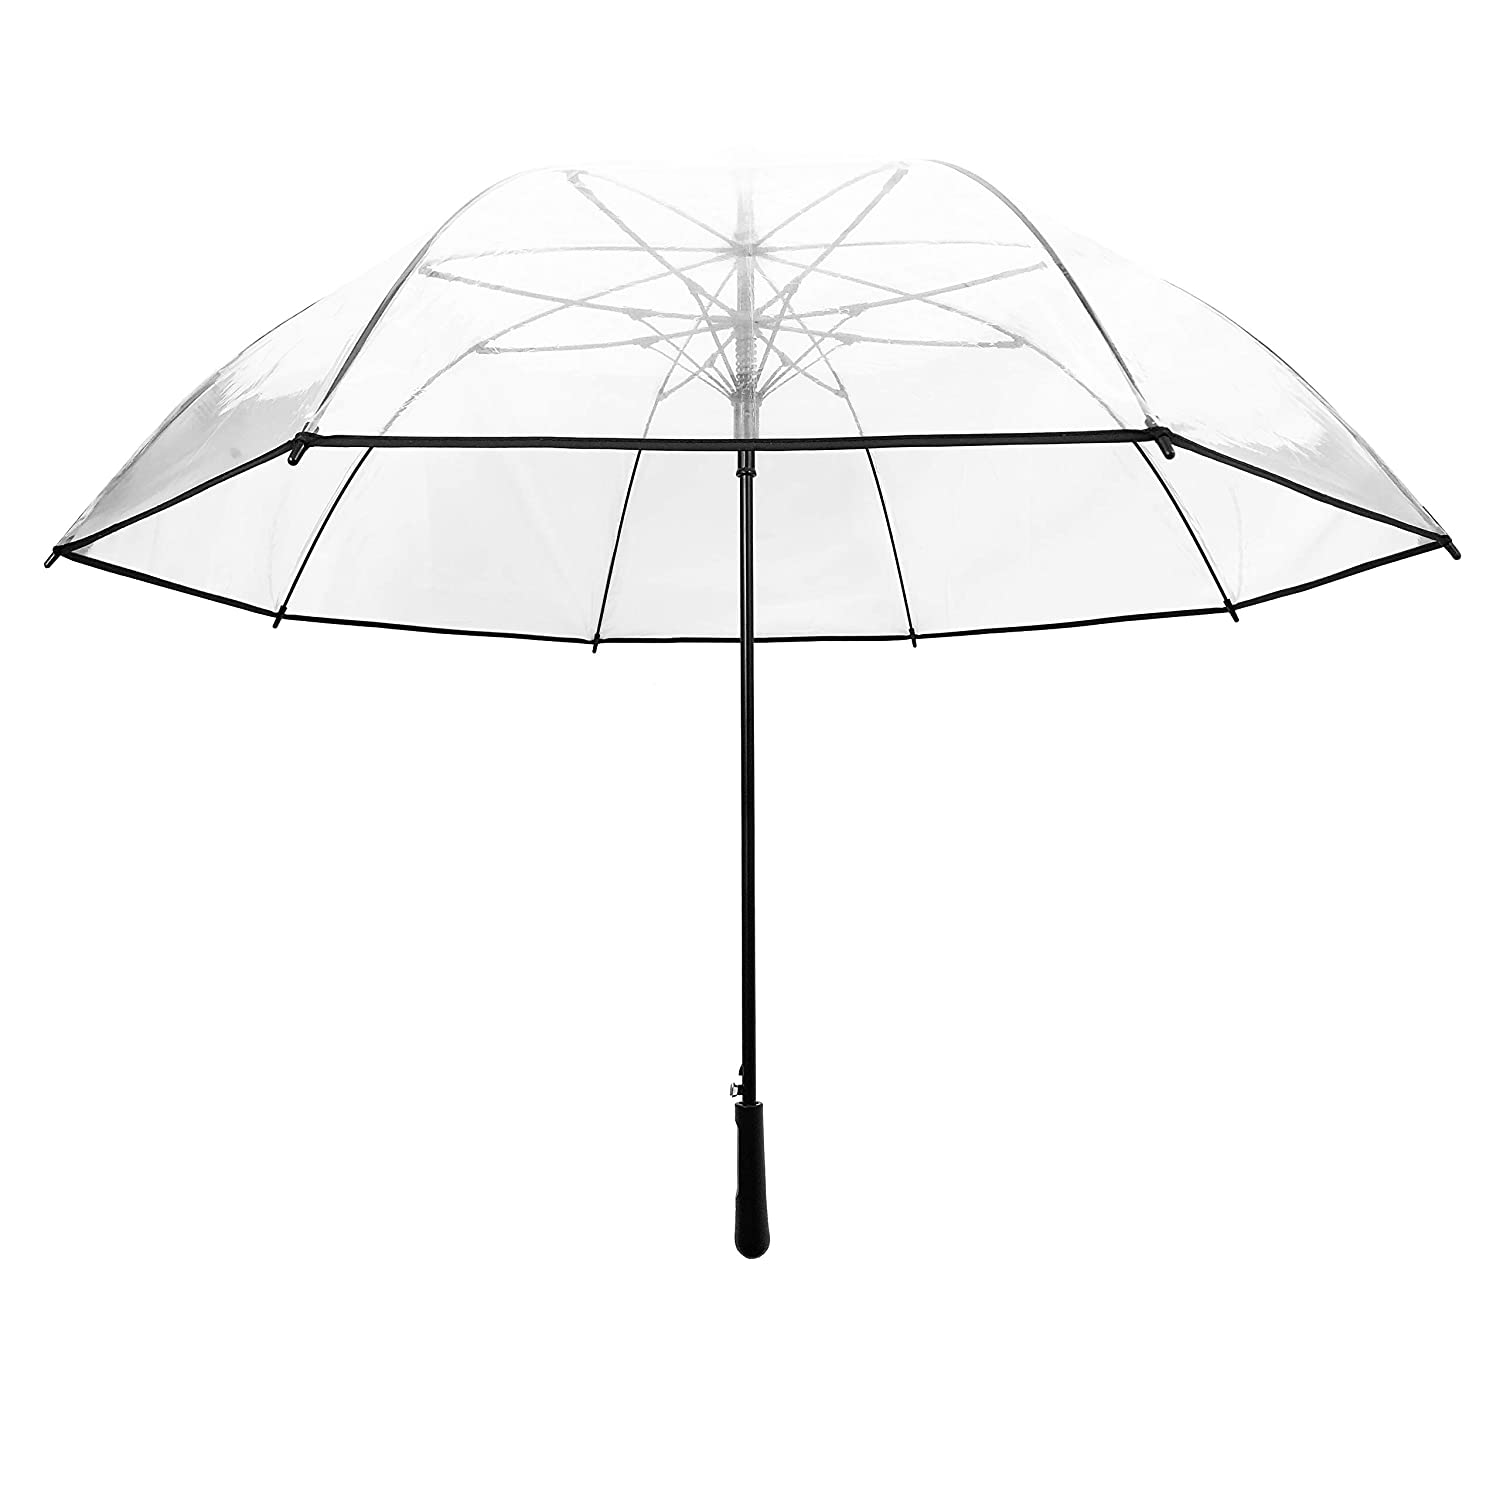 Resistant to Wind Black Wedding Black Border SMATI Stick Extra Large Clear Umbrella